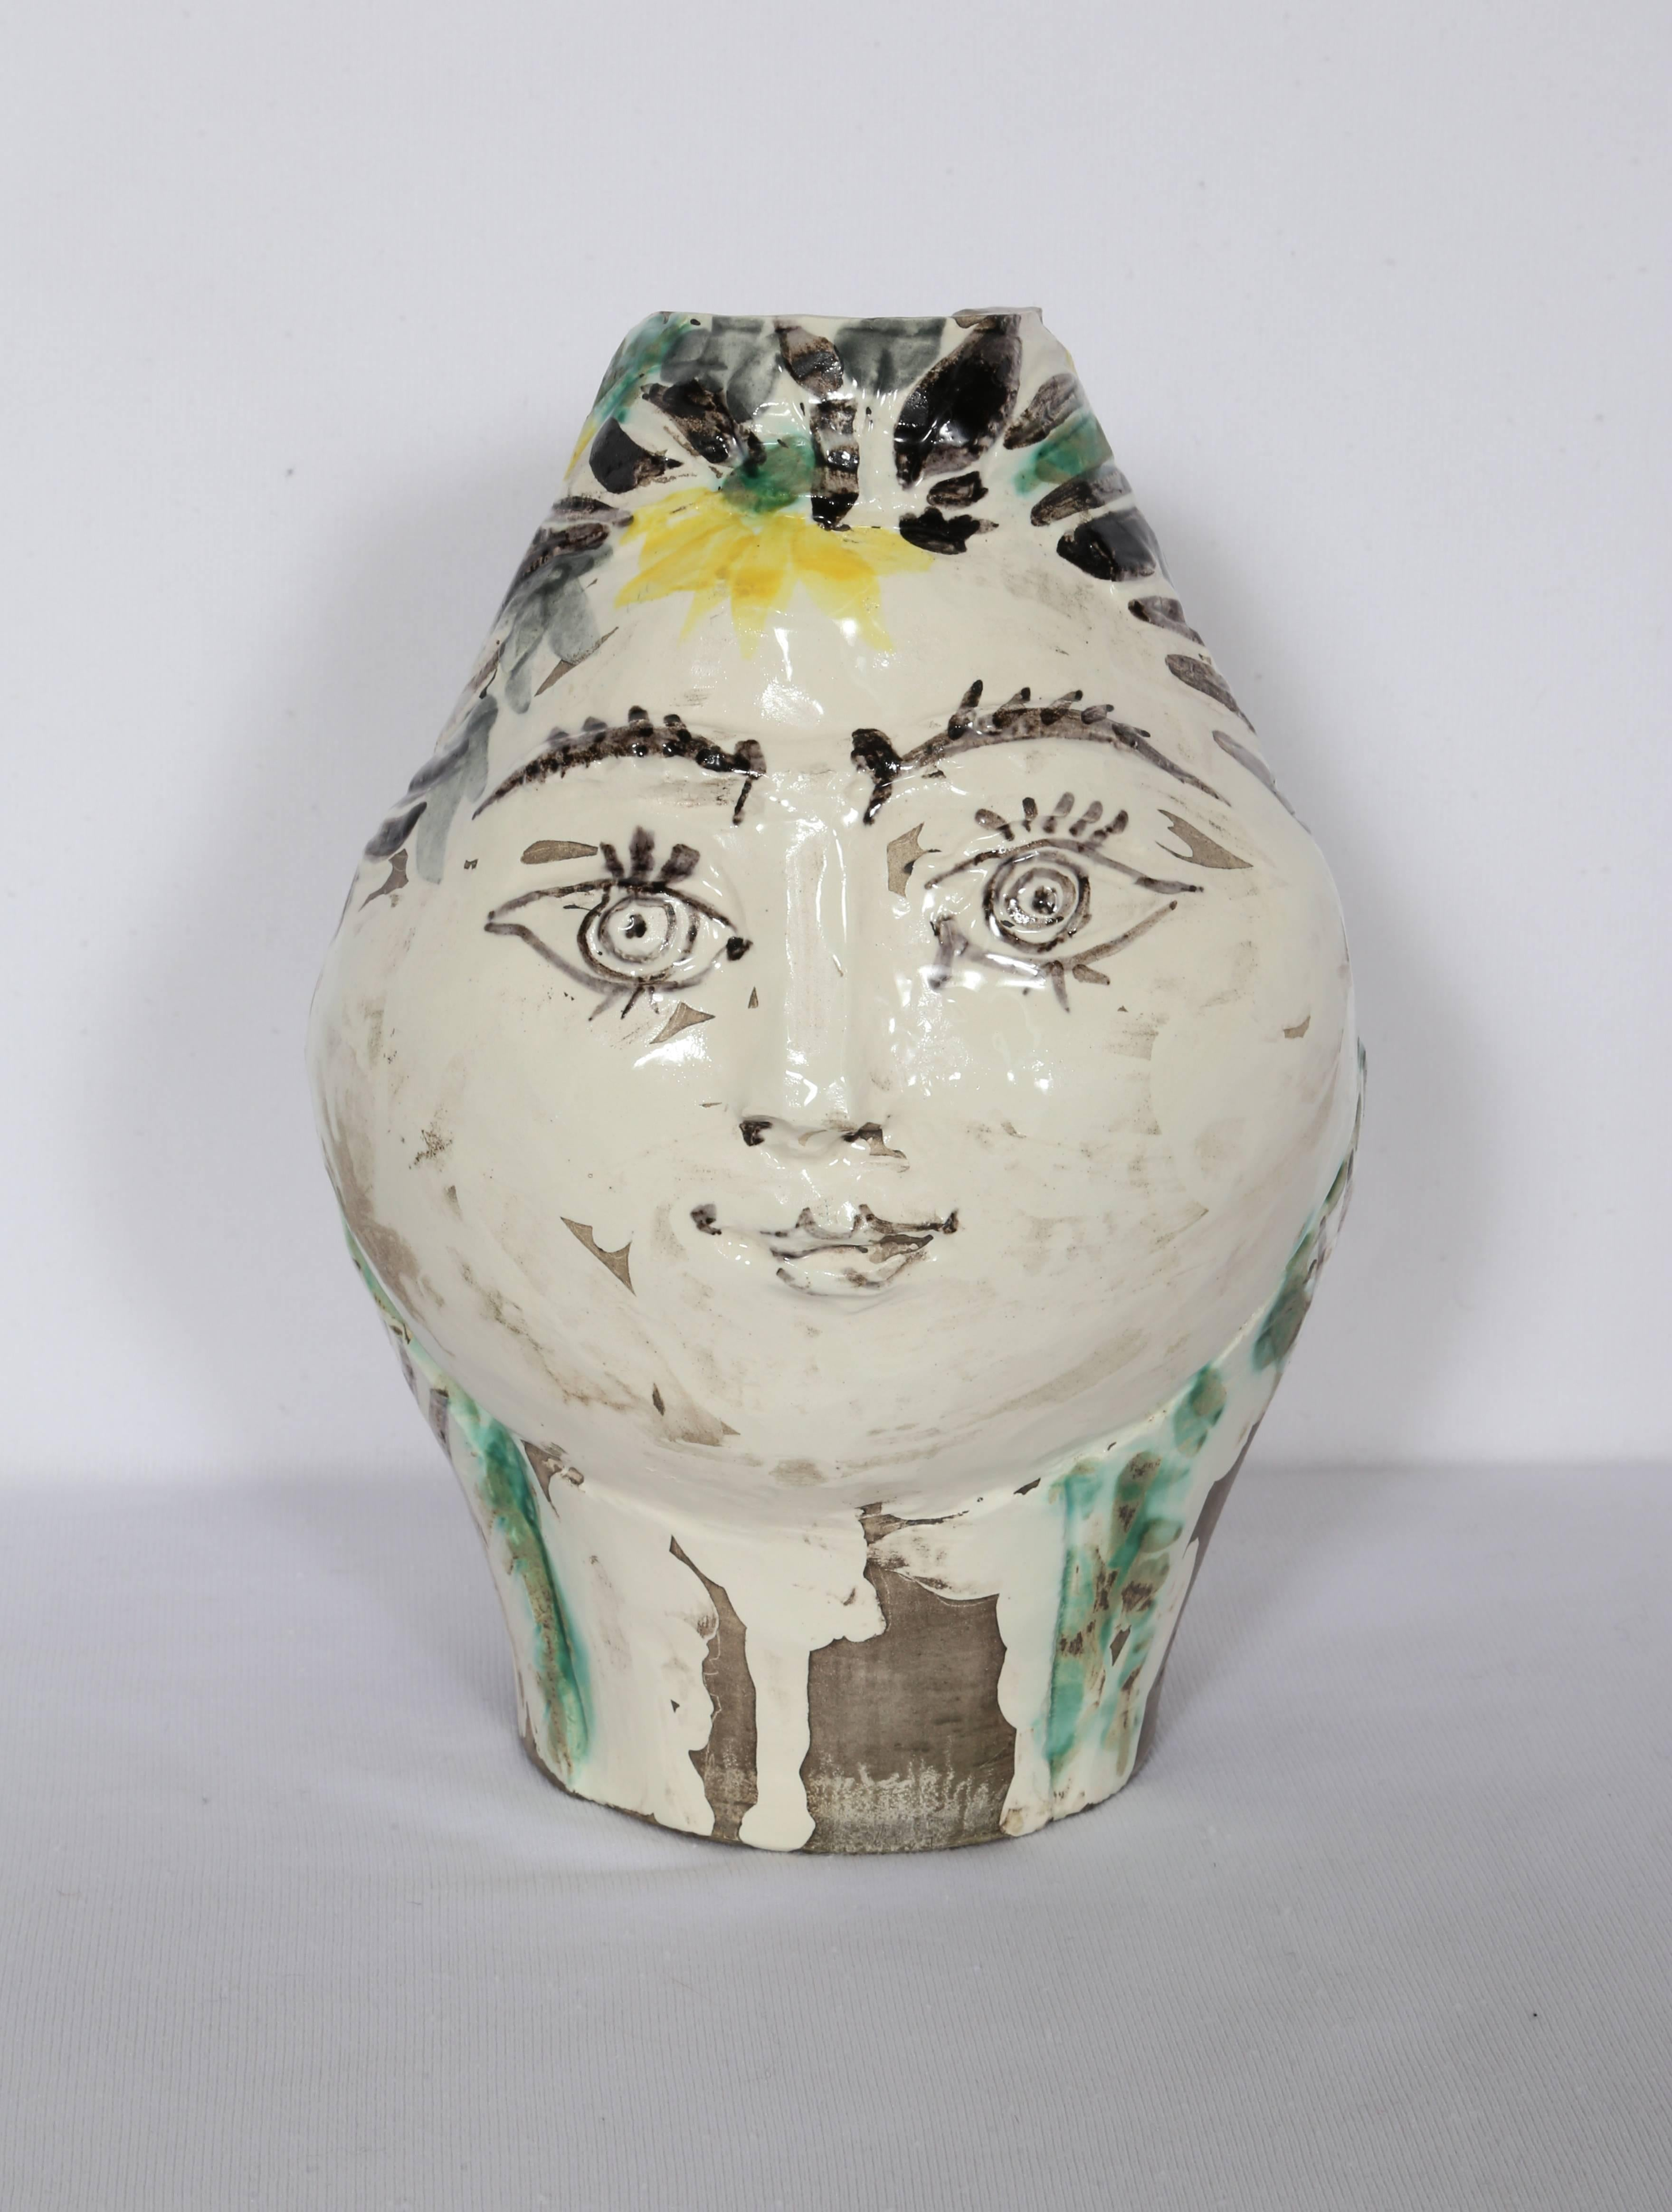 Woman's Head, Decorated with Flowers, Ceramic by Pablo Picasso 1954